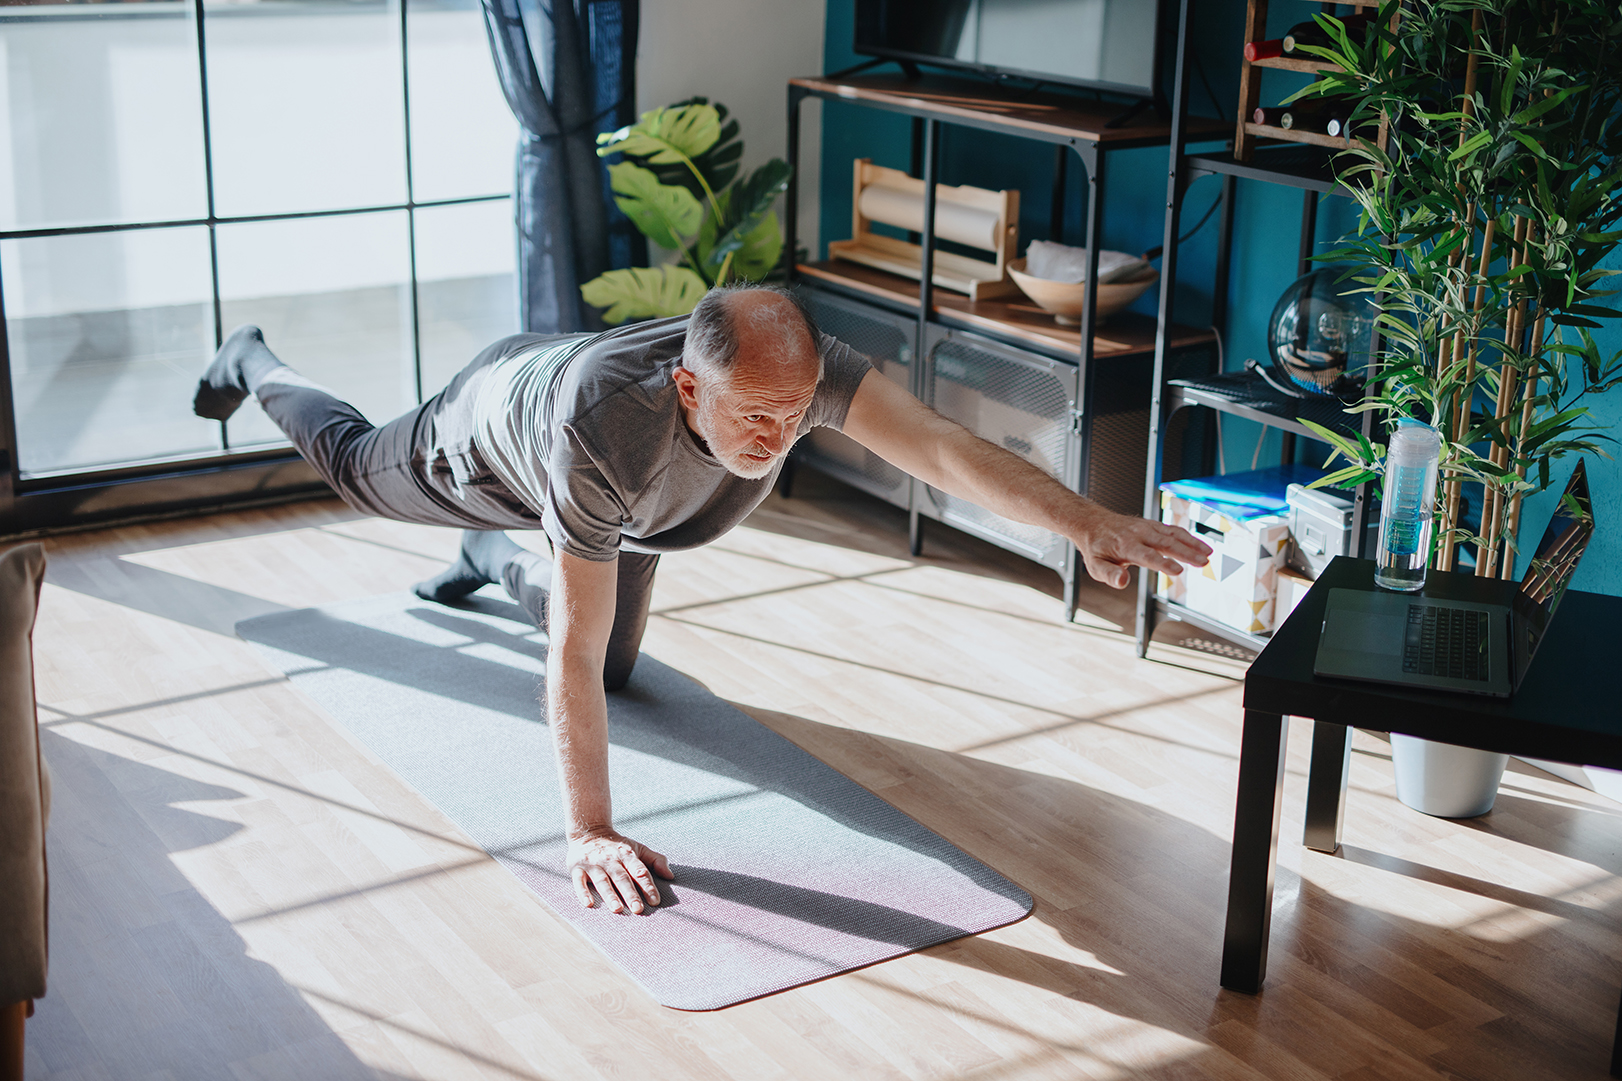 Man exercising on a yoga mat in his home. One arm is outstretched towards his laptop with his leg outstretched towards the window.